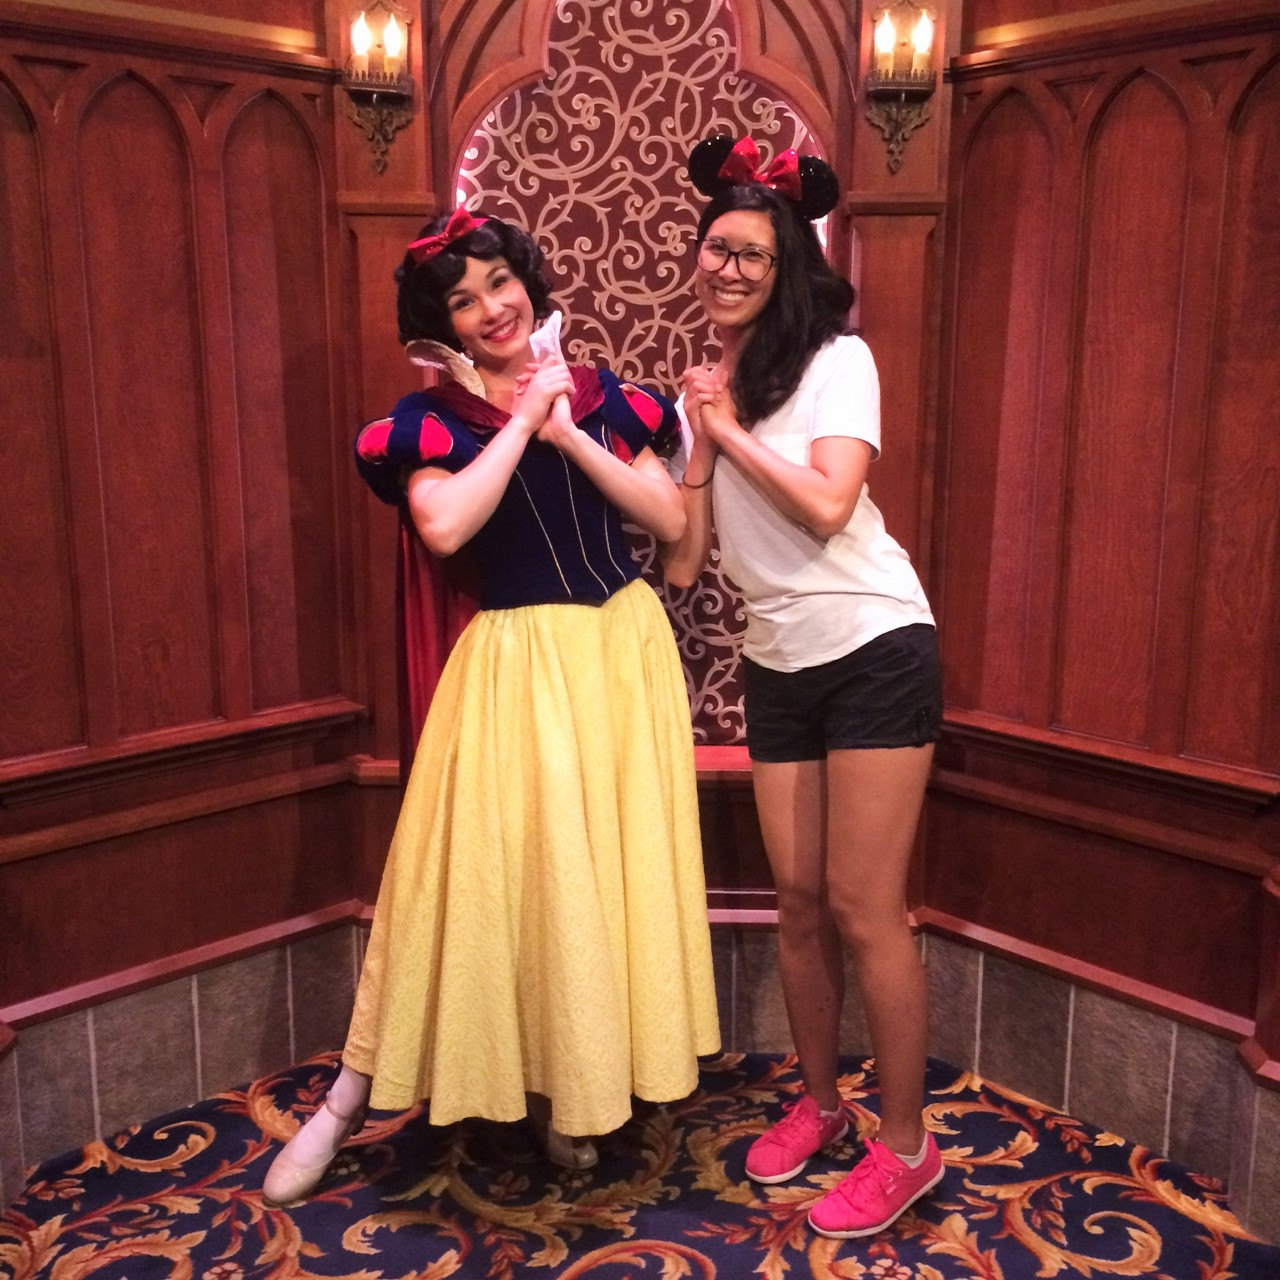 Meeting Snow White at Disneyland